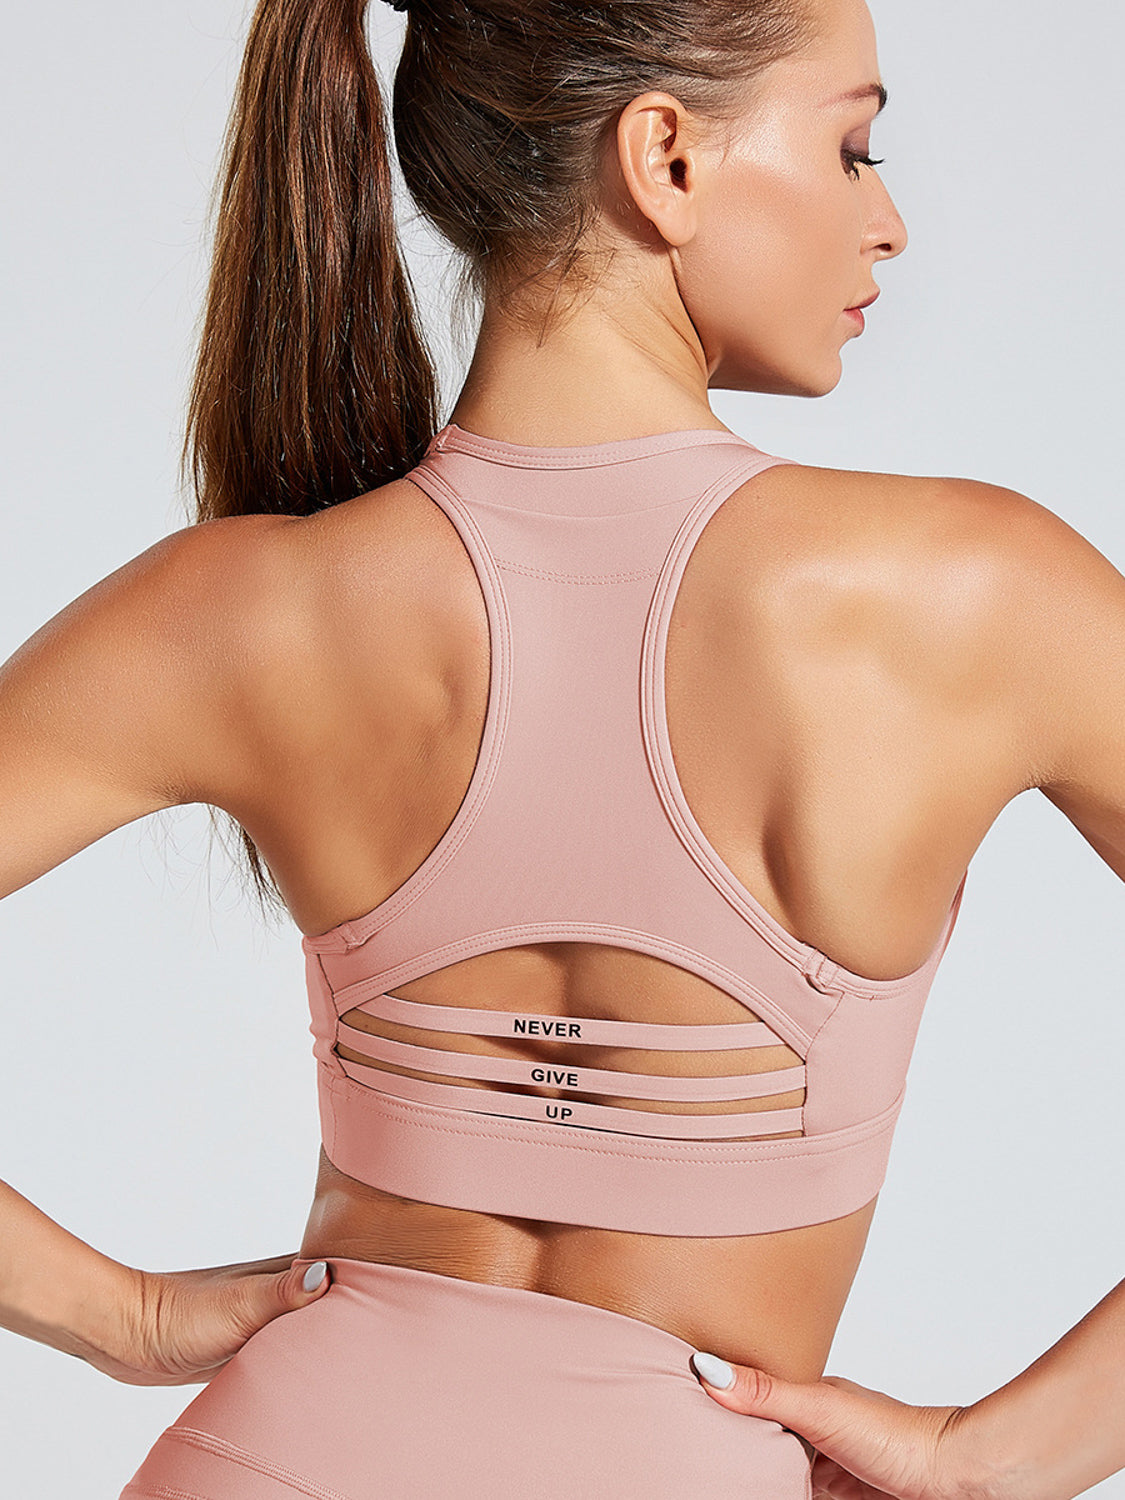 MOVI 'Never Give Up' Sports Bra (Blush)